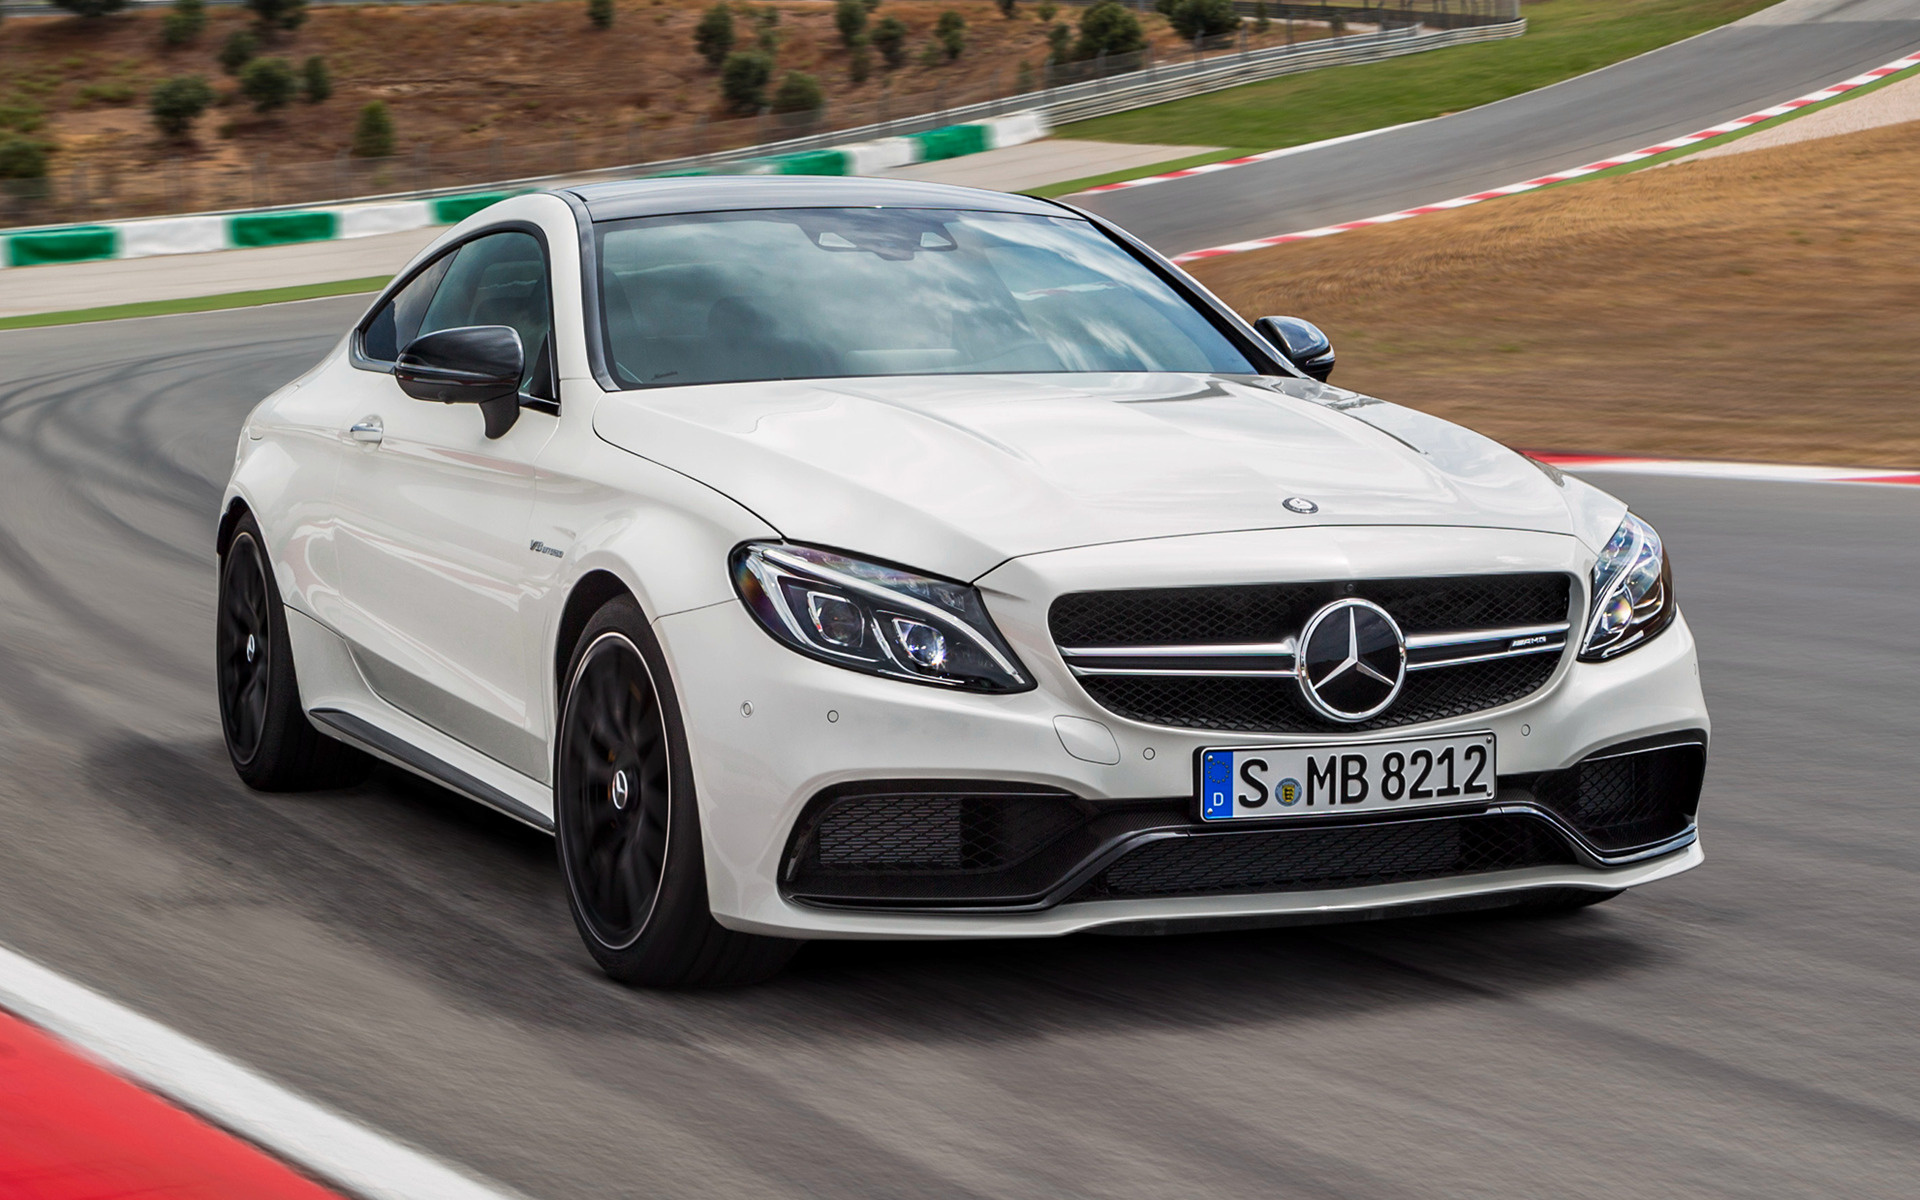 Mercedes Amg C 63 S Coupe 2016 Wallpapers And Hd Images